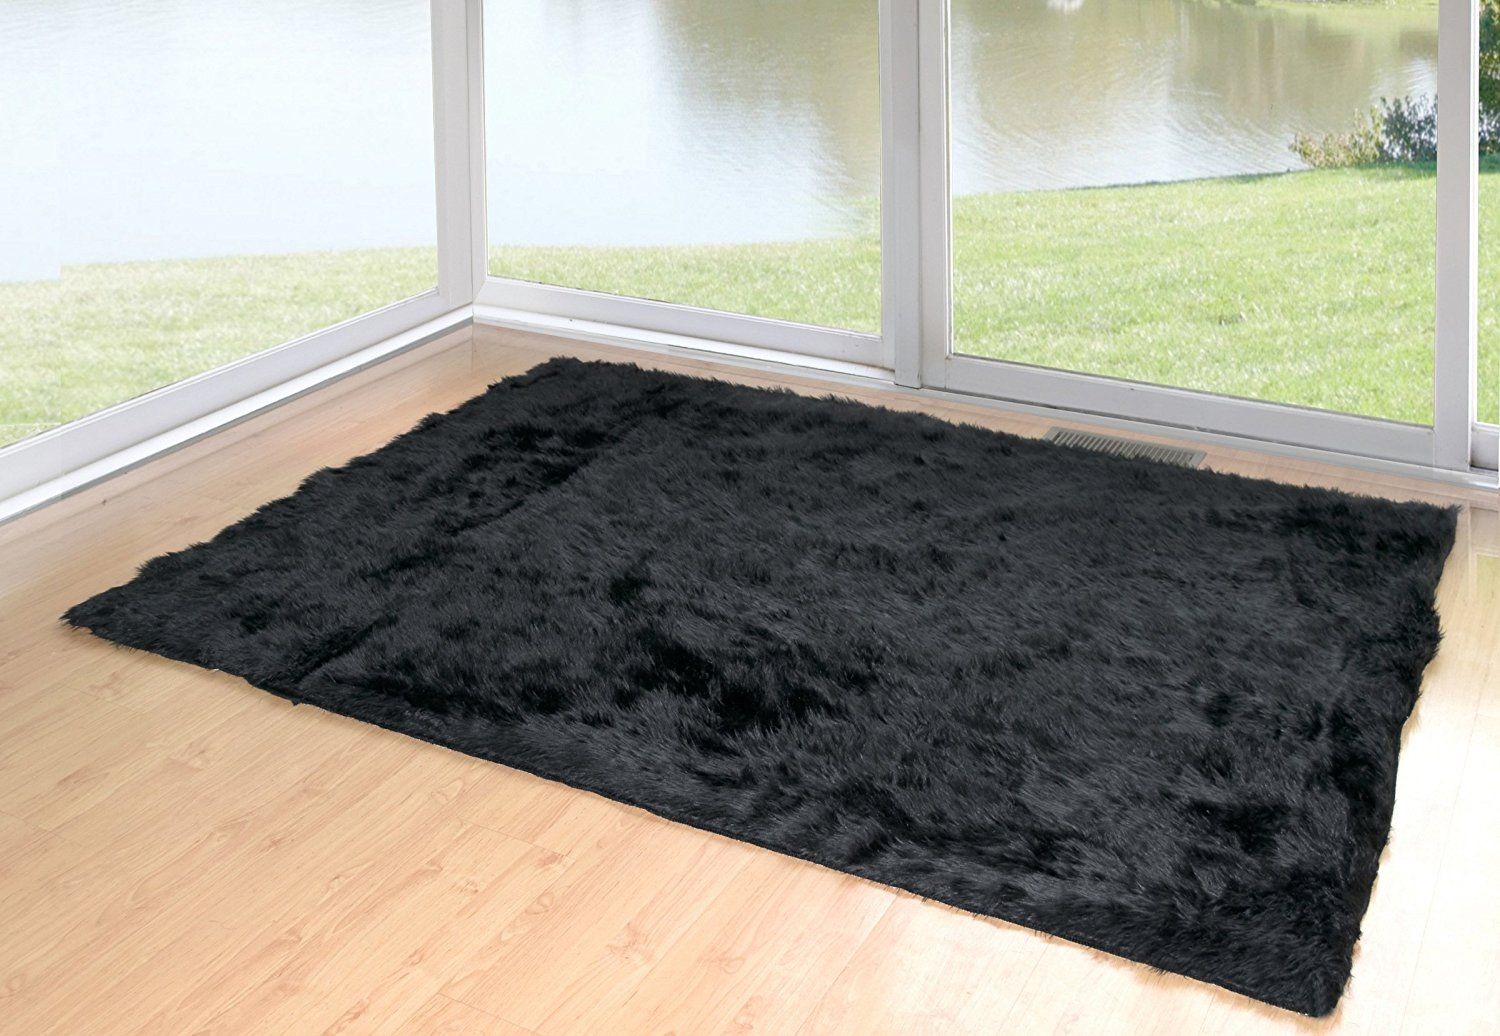 Glamour Home Faux Sheepskin Silky Flokati Fur Shaggy Area Rug 5x7 Black Click Image For More Details Affiliate Link Glamour Home Area Rugs Black Area Rugs